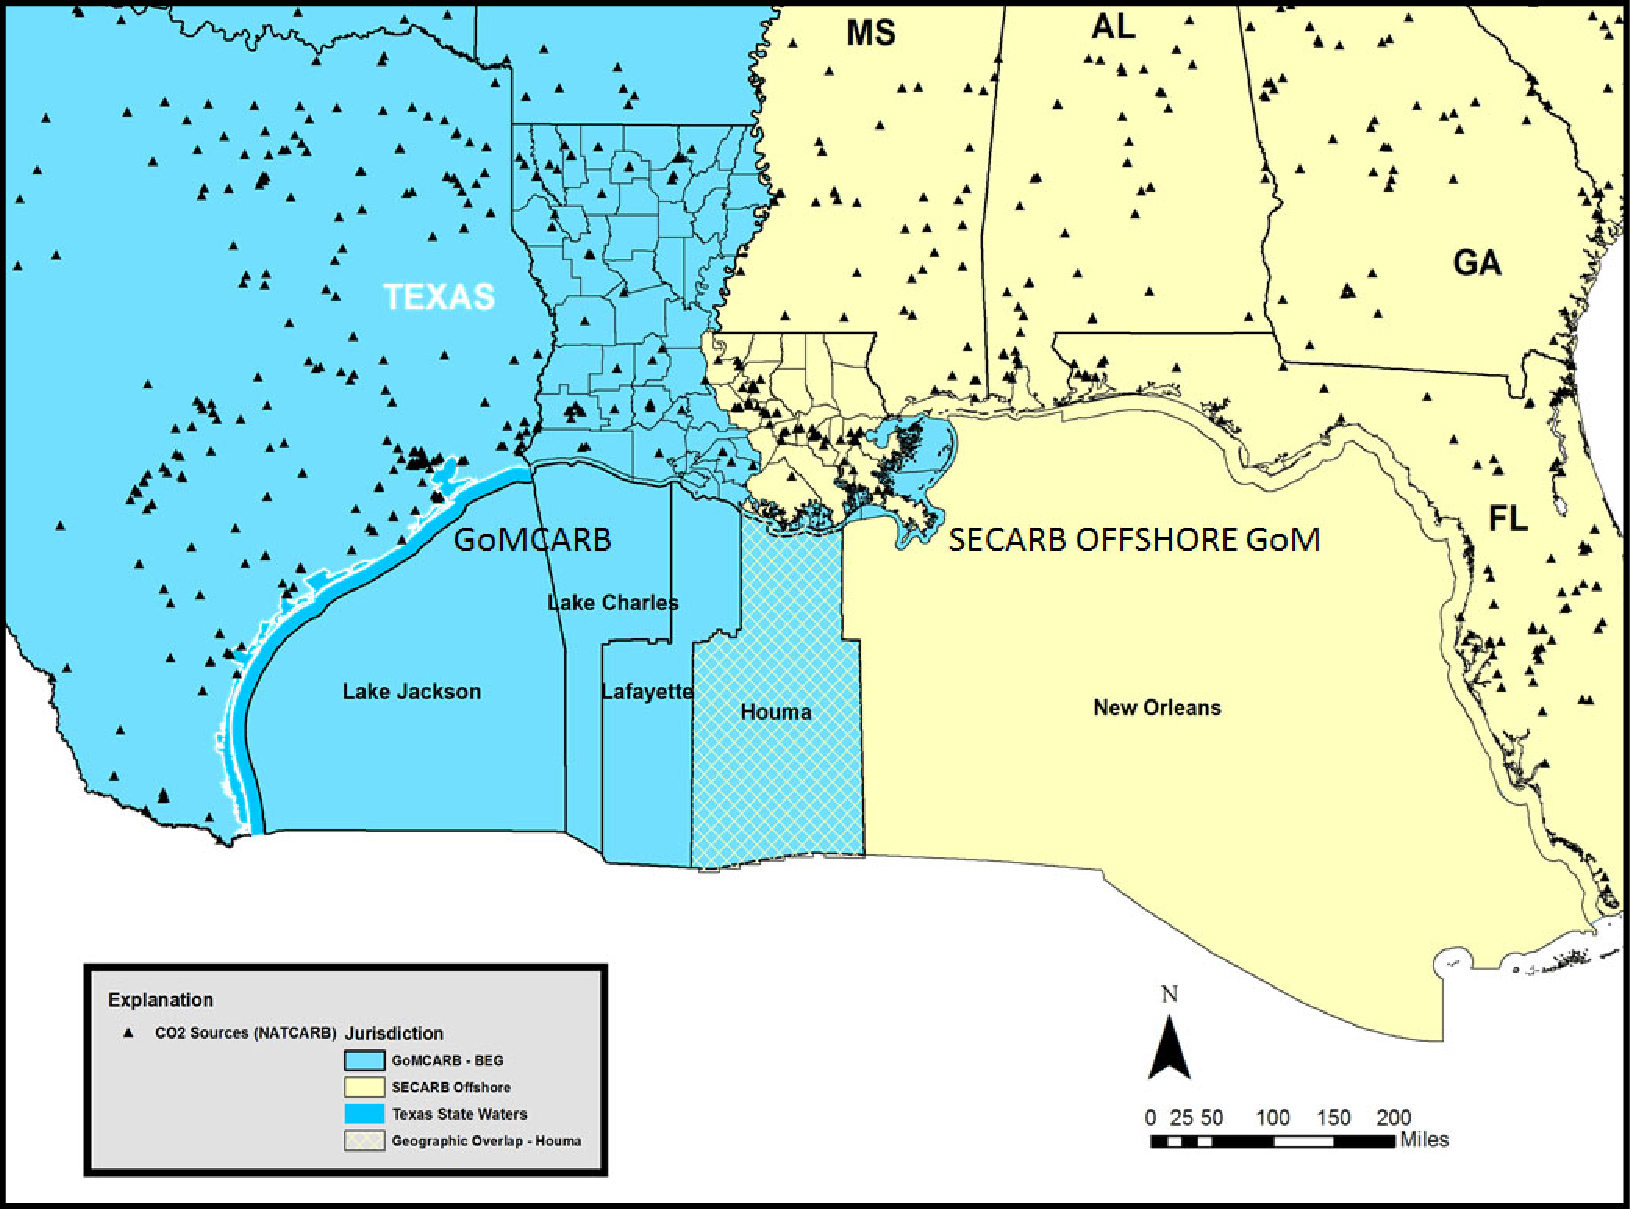 GoMCarb project works in the state waters off the coast of Texas and Louisiana